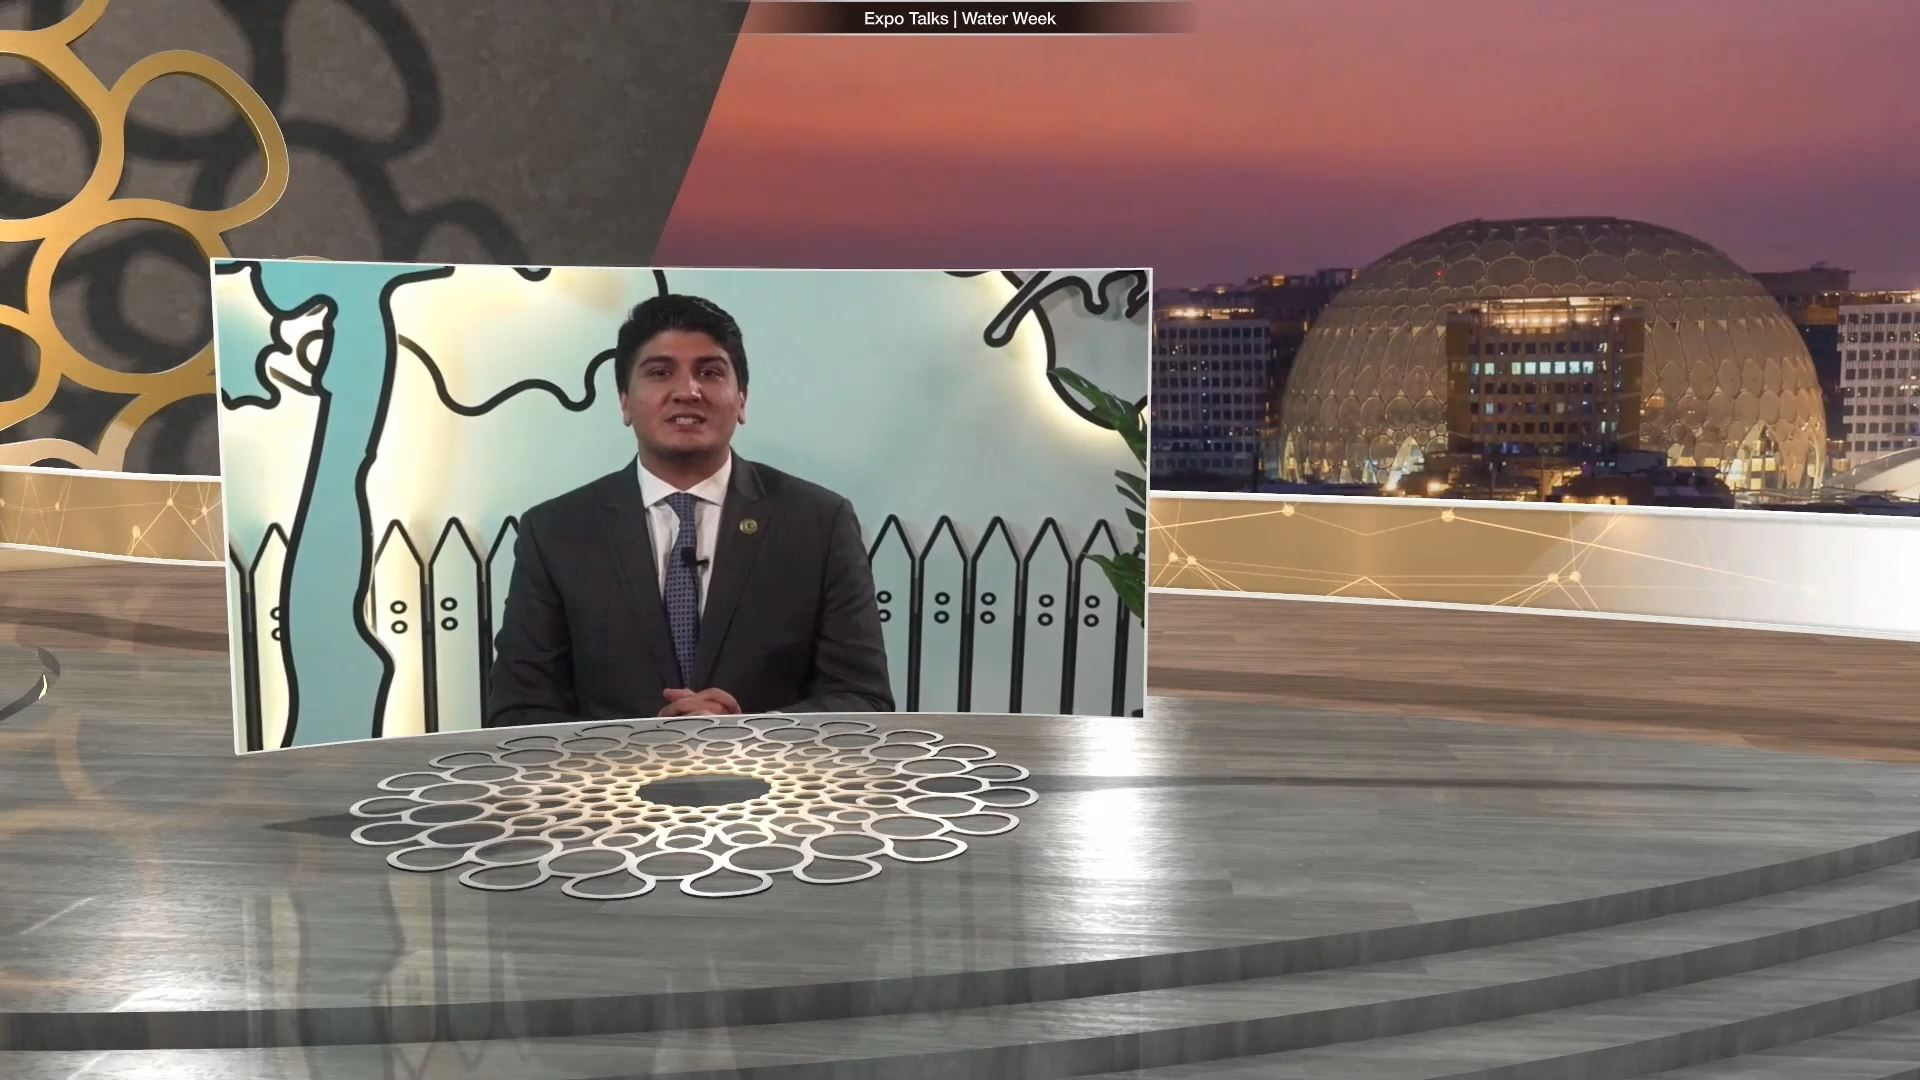 expo 2020 thematic weeks virtual event virtual host